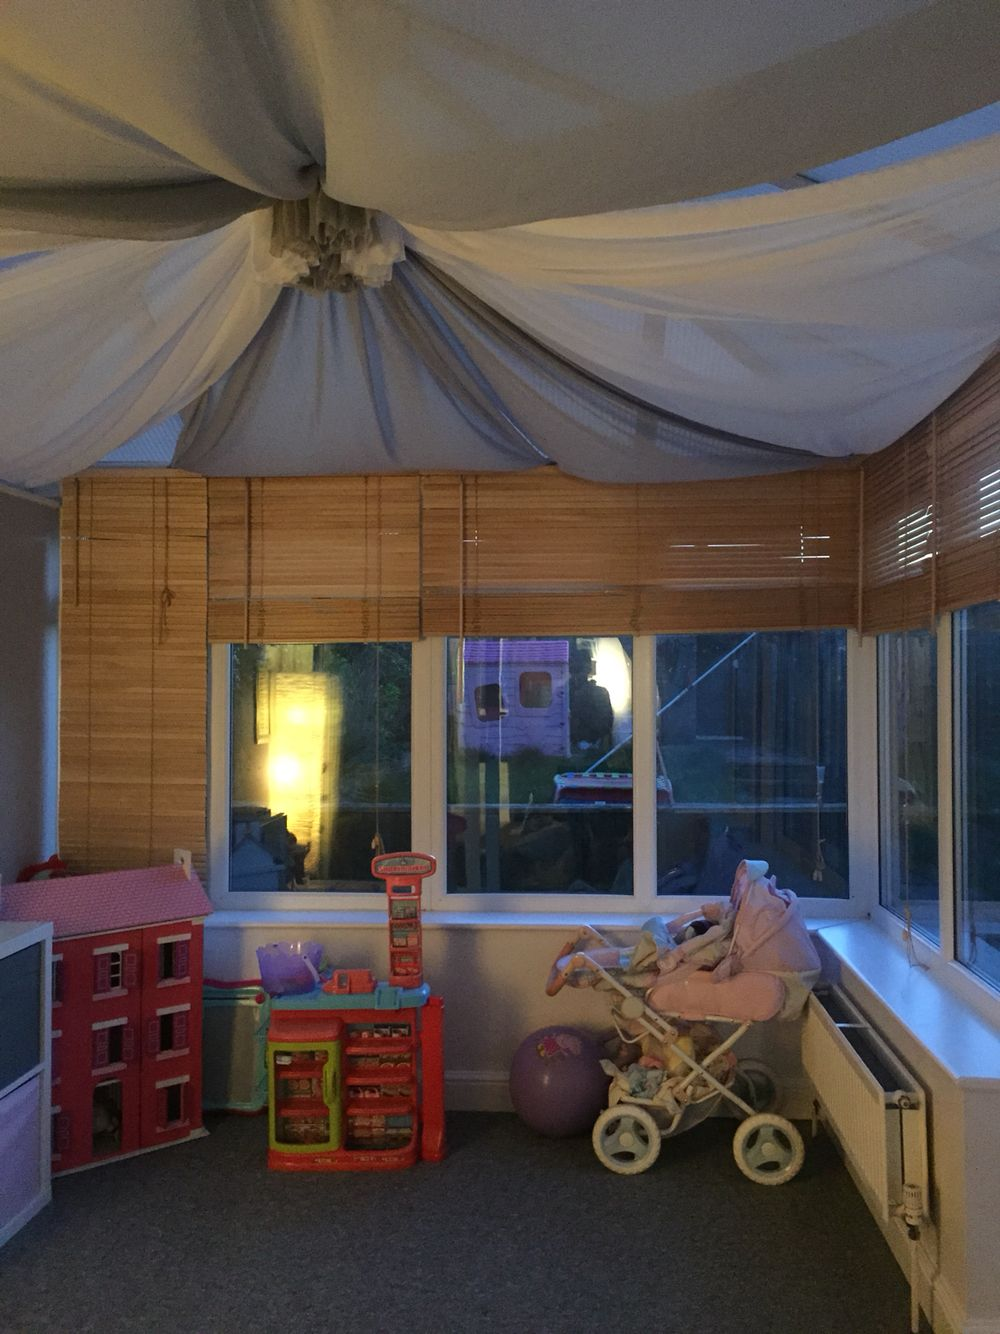 Close Up Of Playroom I Have Created For My Daughter In My Conservatory Ceiling Drapes Fabric Swag Have Help Outdoor Canopy Lights House Canopy Backyard Canopy